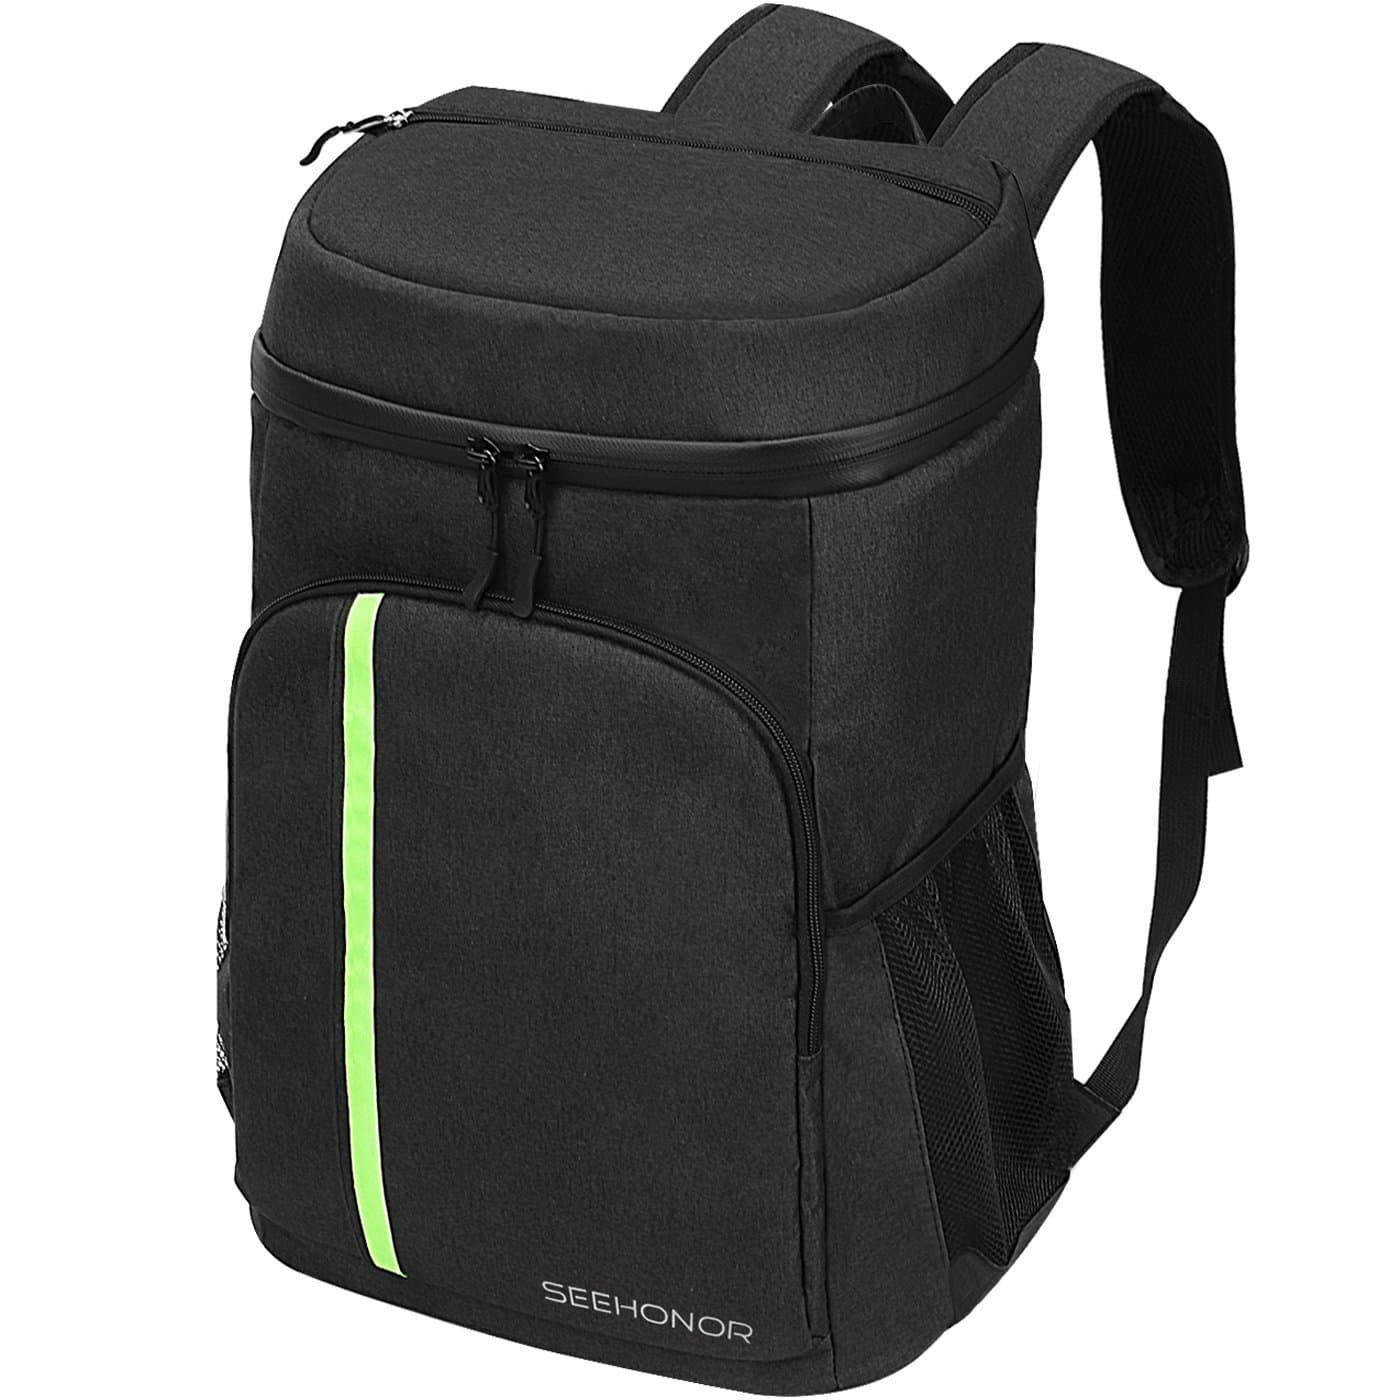 Insulated Cooler Backpack $29.59 AC + FS (Prime)